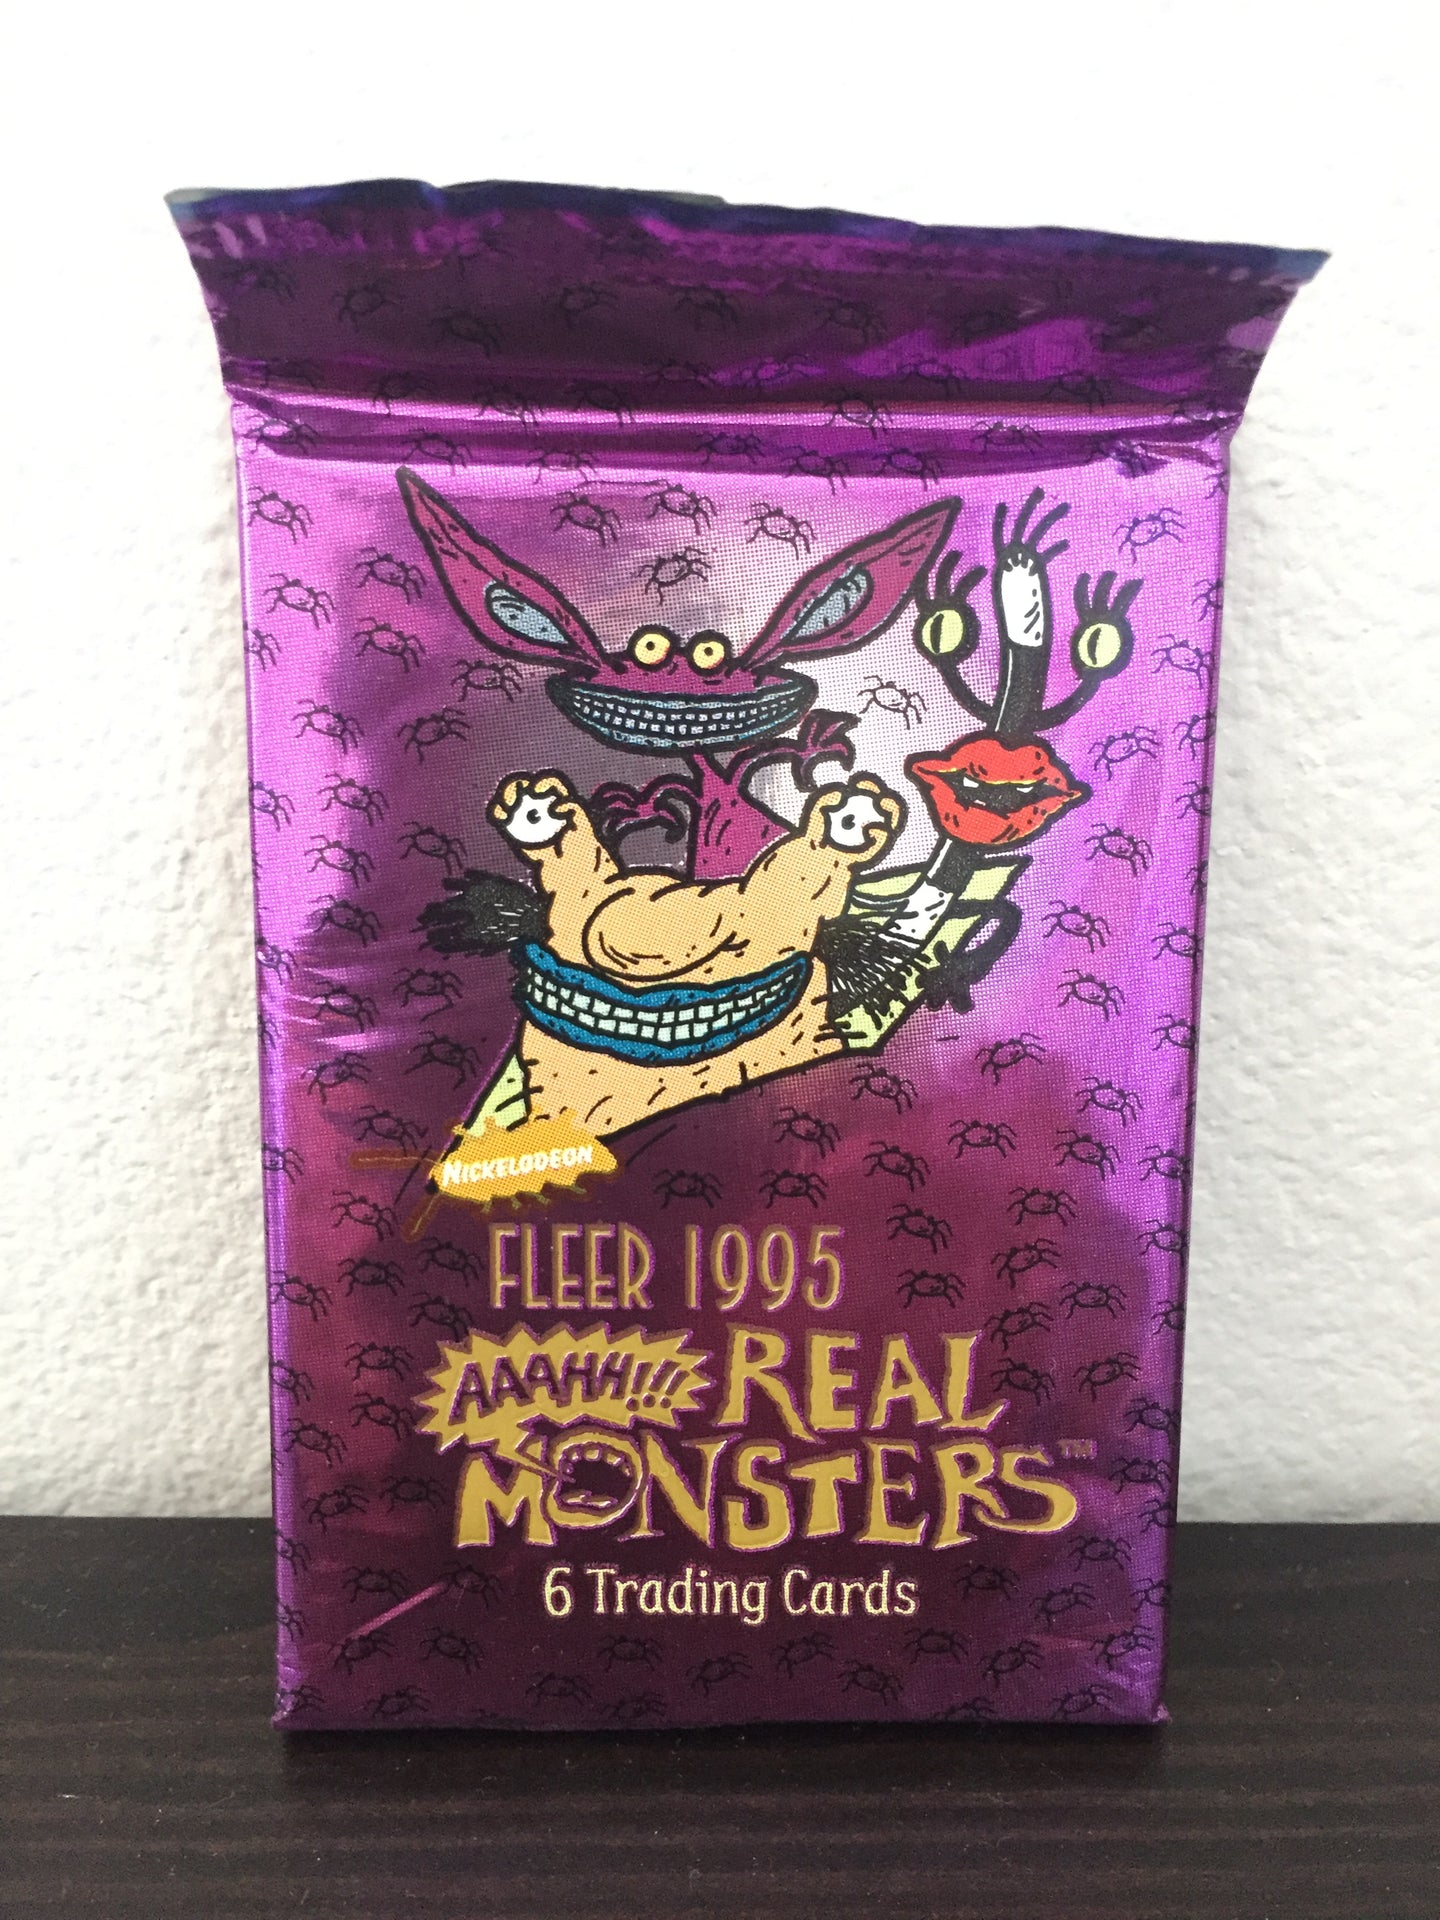 Aaahh!!! Real Monsters Trading Cards